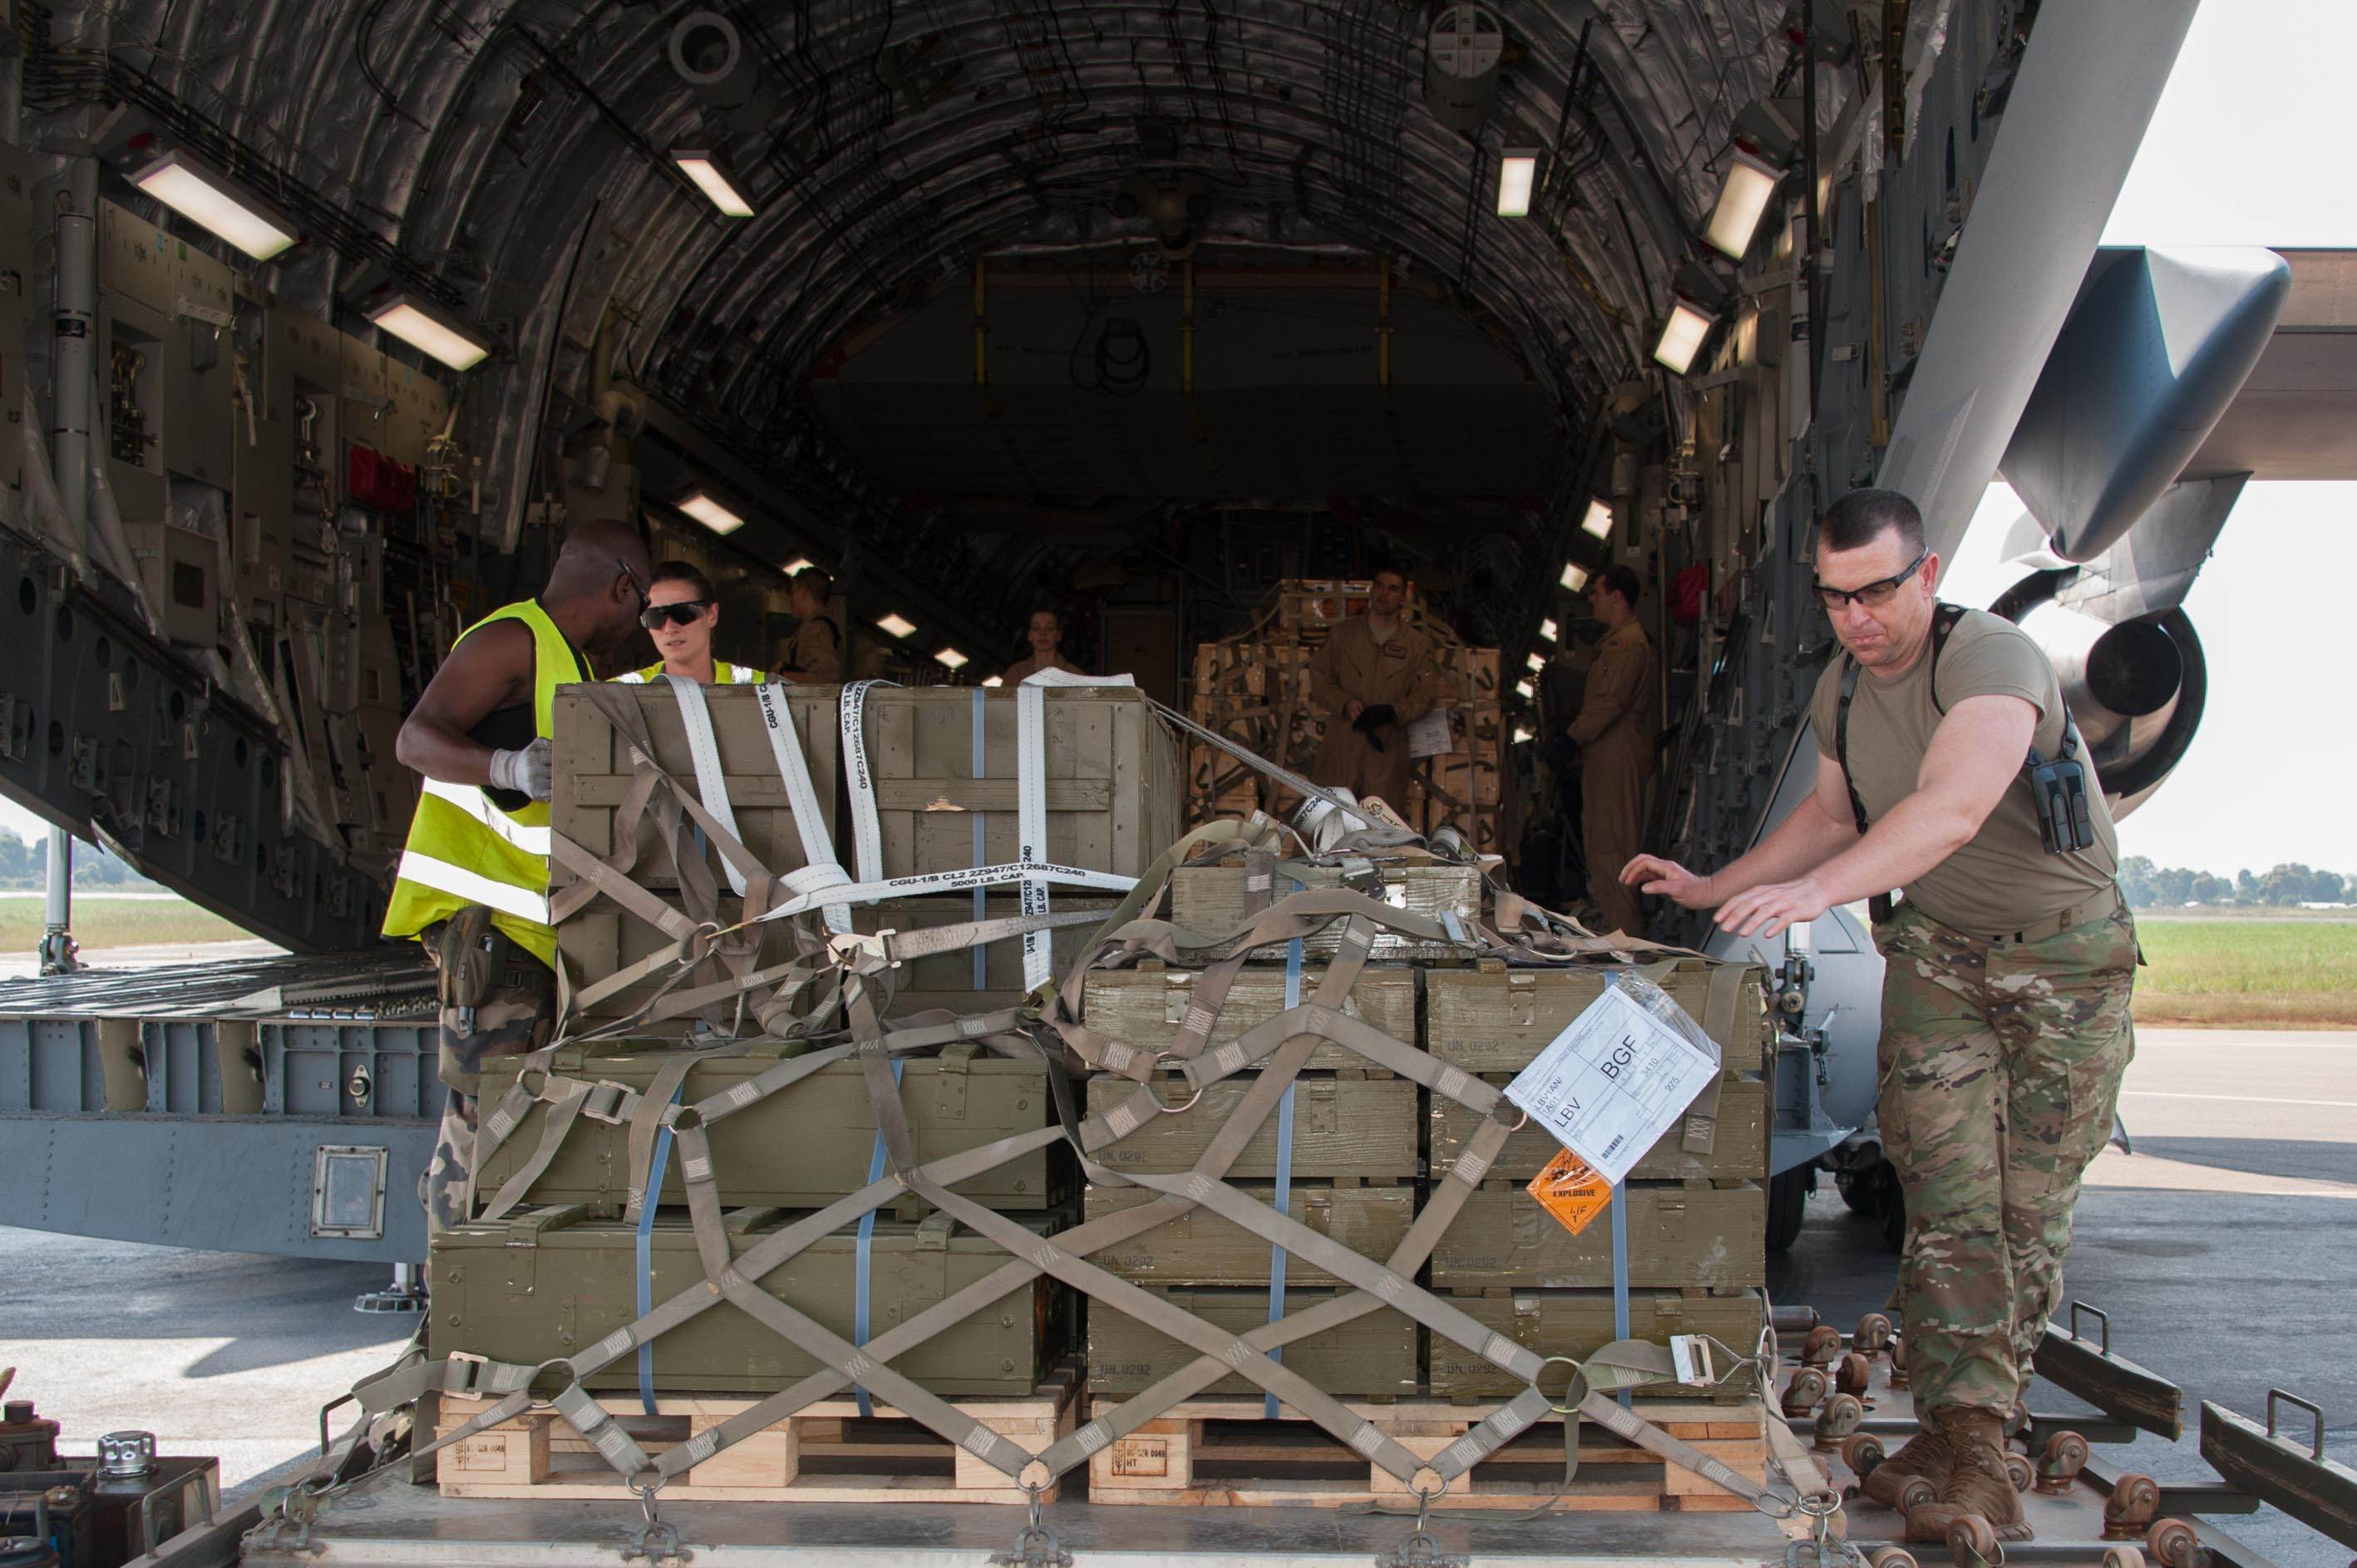 Strategic Lift - U.S. Air Force Crew Loads Aravis:  McGuire Air Force Base and McChord Air Force Base personnel work together to load a Gabonese armored personnel carrier on a C-17 before departing for Bangui, Central African Republic; Dec. 15, 2015, Libreville, Gabon. Both the U.S. and France provided military manpower in Libreville, Gabon, and the Central African Republic's capital, Bangui, to help with the loading/unloading and transport of equipment.  The result was the timely deployment of more than 450,000 pounds of vital equipment and vehicles for the Gabonese military. (Photo courtesy of French military, ADC Laminette/RELEASED)